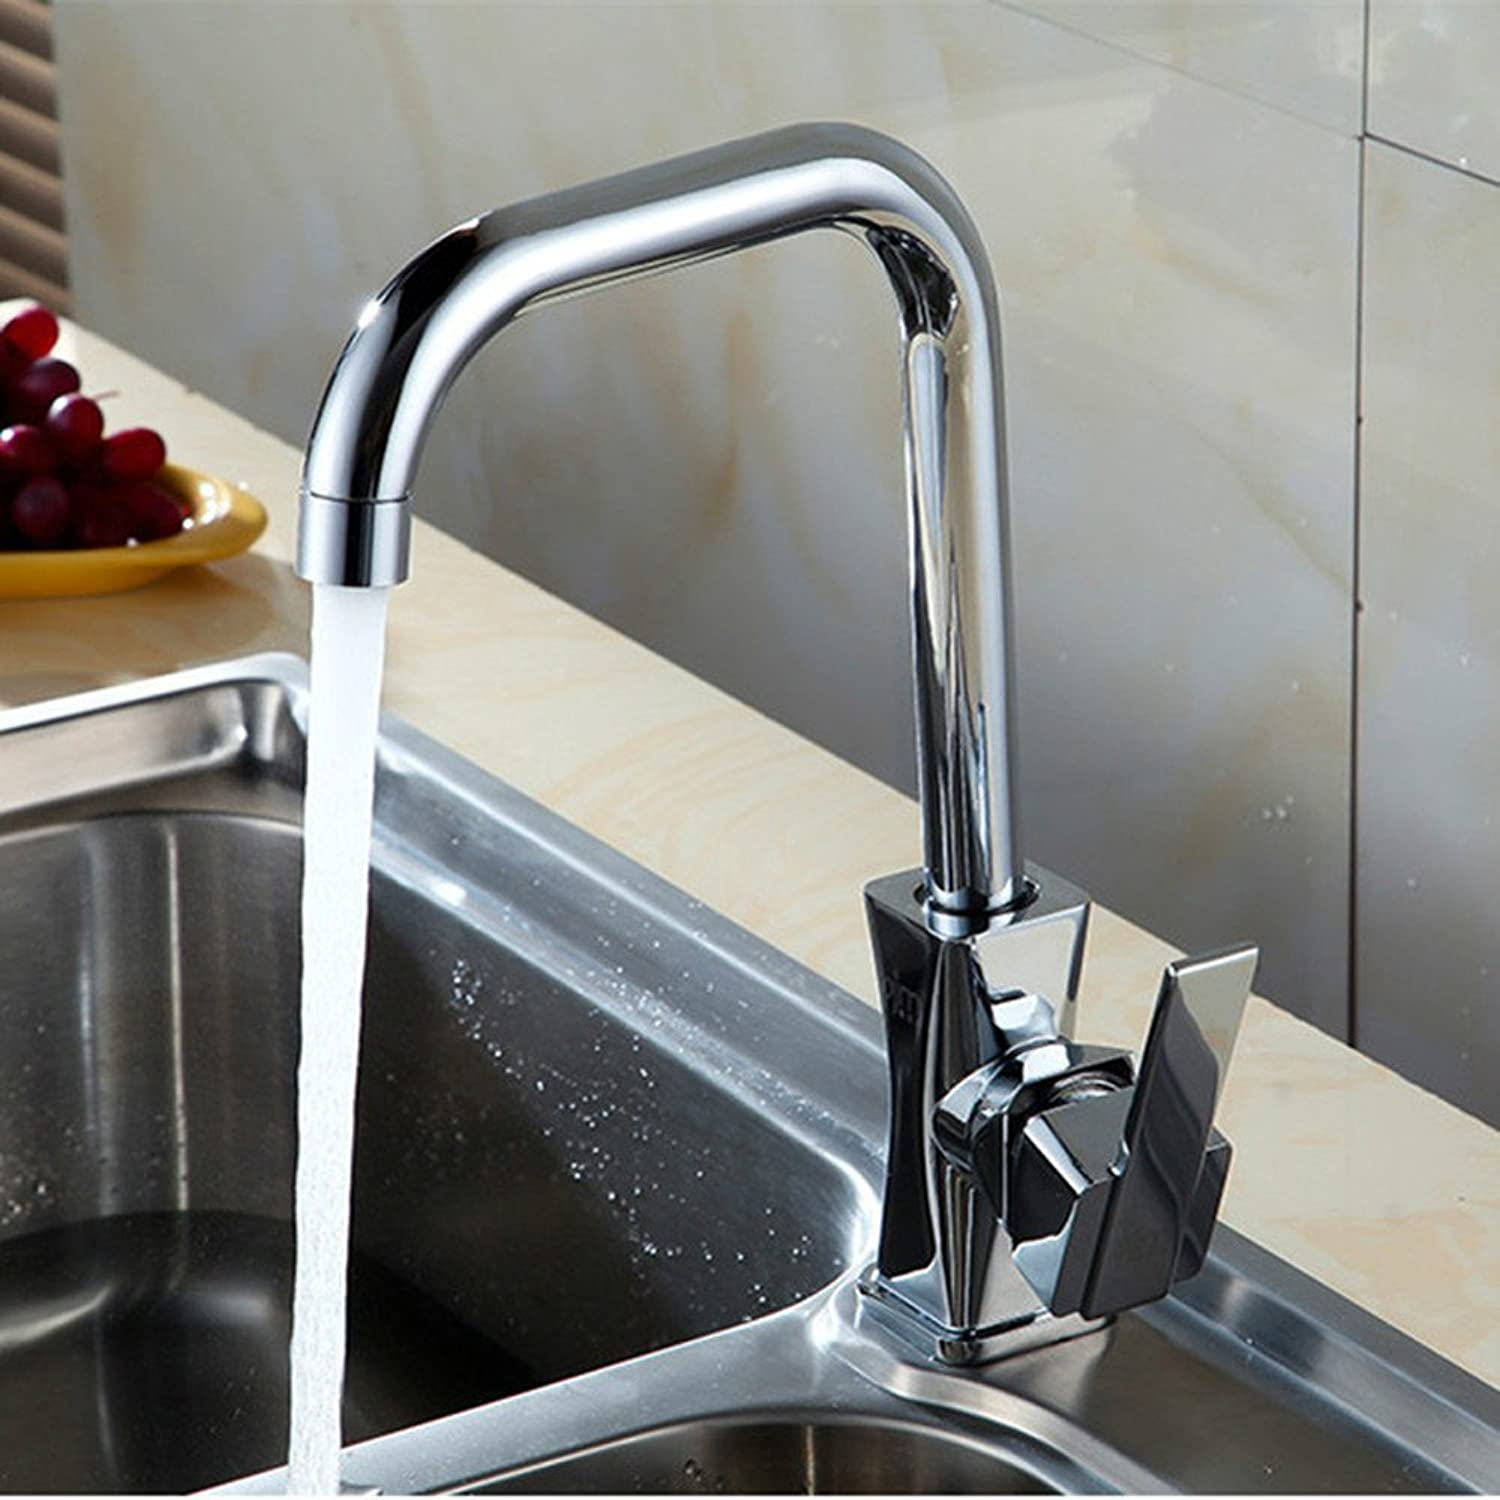 Commercial Single Lever Pull Down Kitchen Sink Faucet Brass Constructed Polished Kitchen Faucet Guangdong Zinc Alloy Hot and Cold Water Mixing Mixer 360 Degree redating Faucet